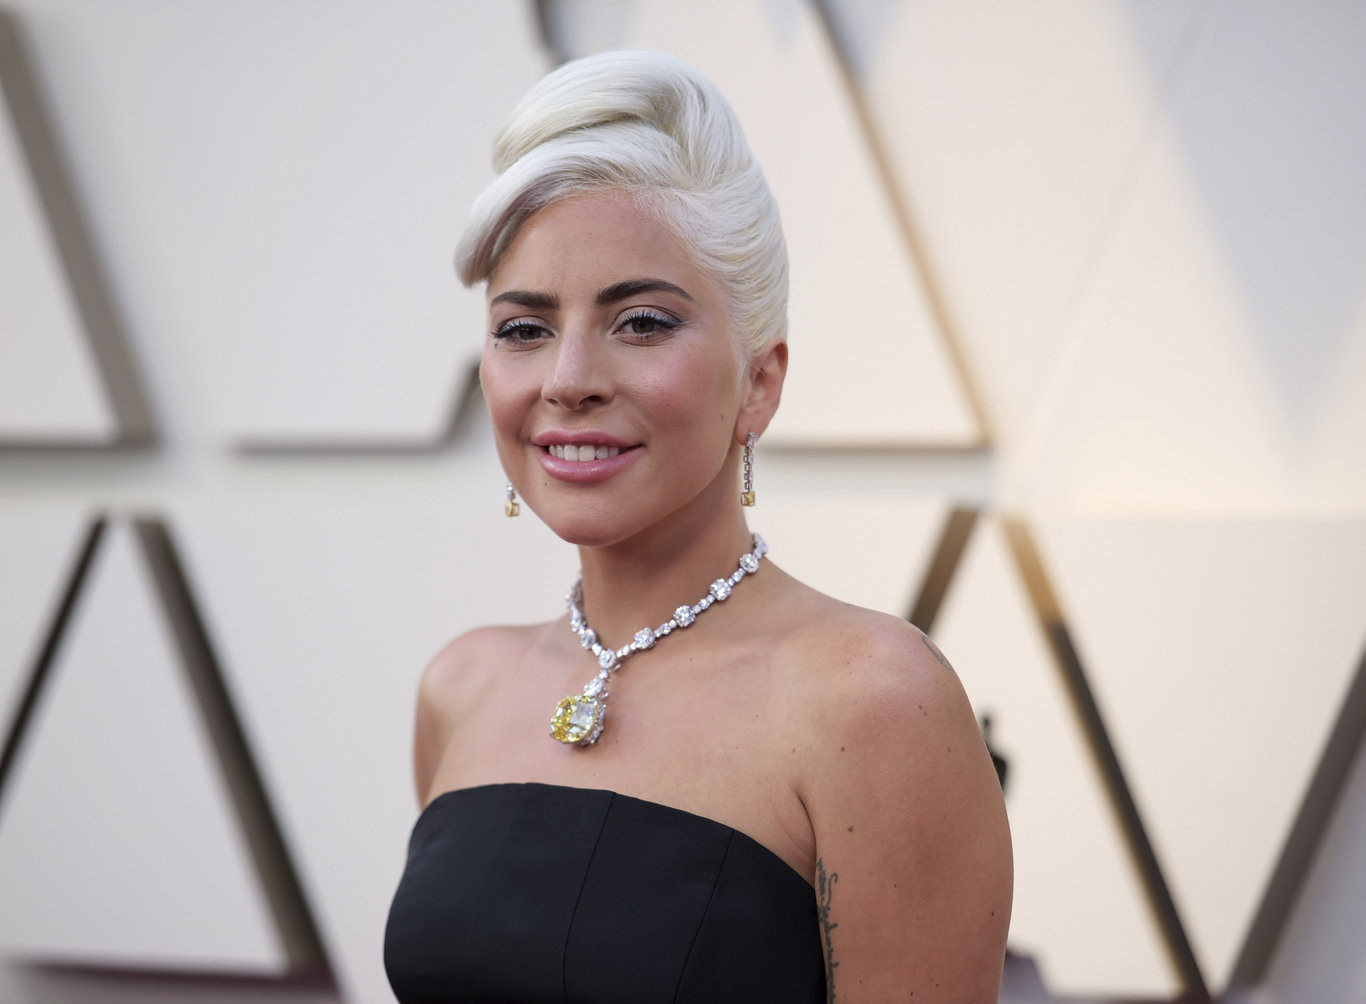 Lady Gaga arrives at the Oscars at the Dolby Theatre in Los Angeles.